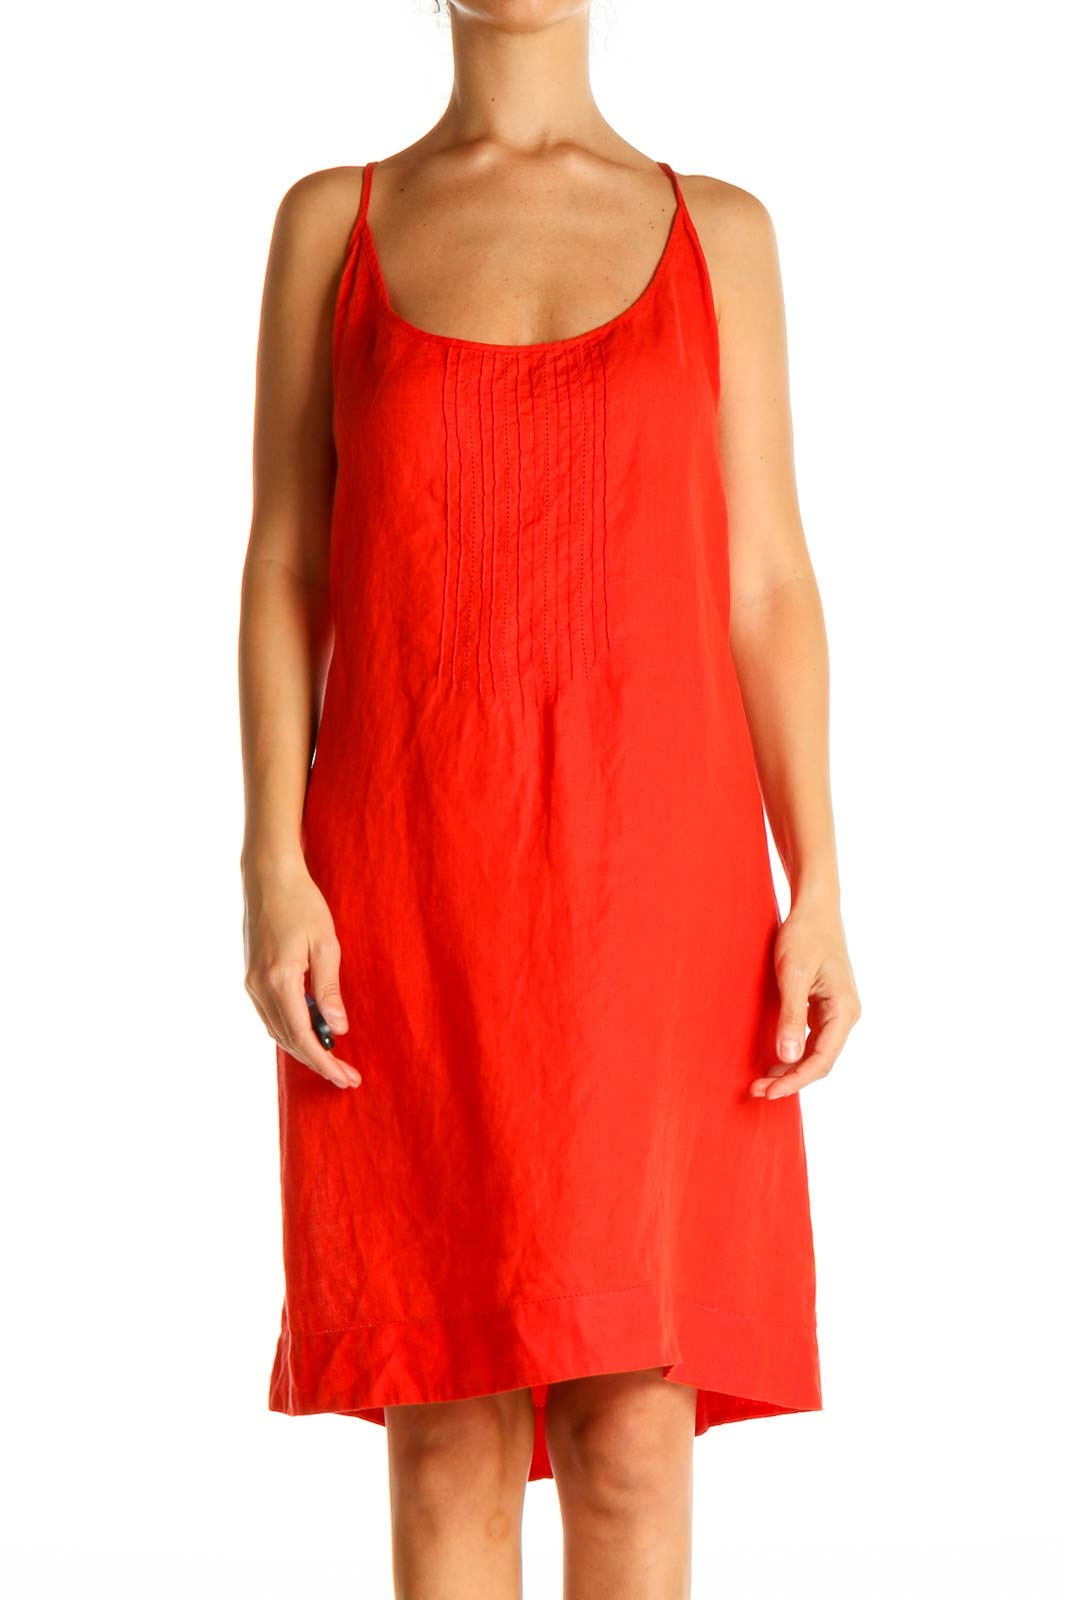 Red Solid Chic A-Line Dress Front